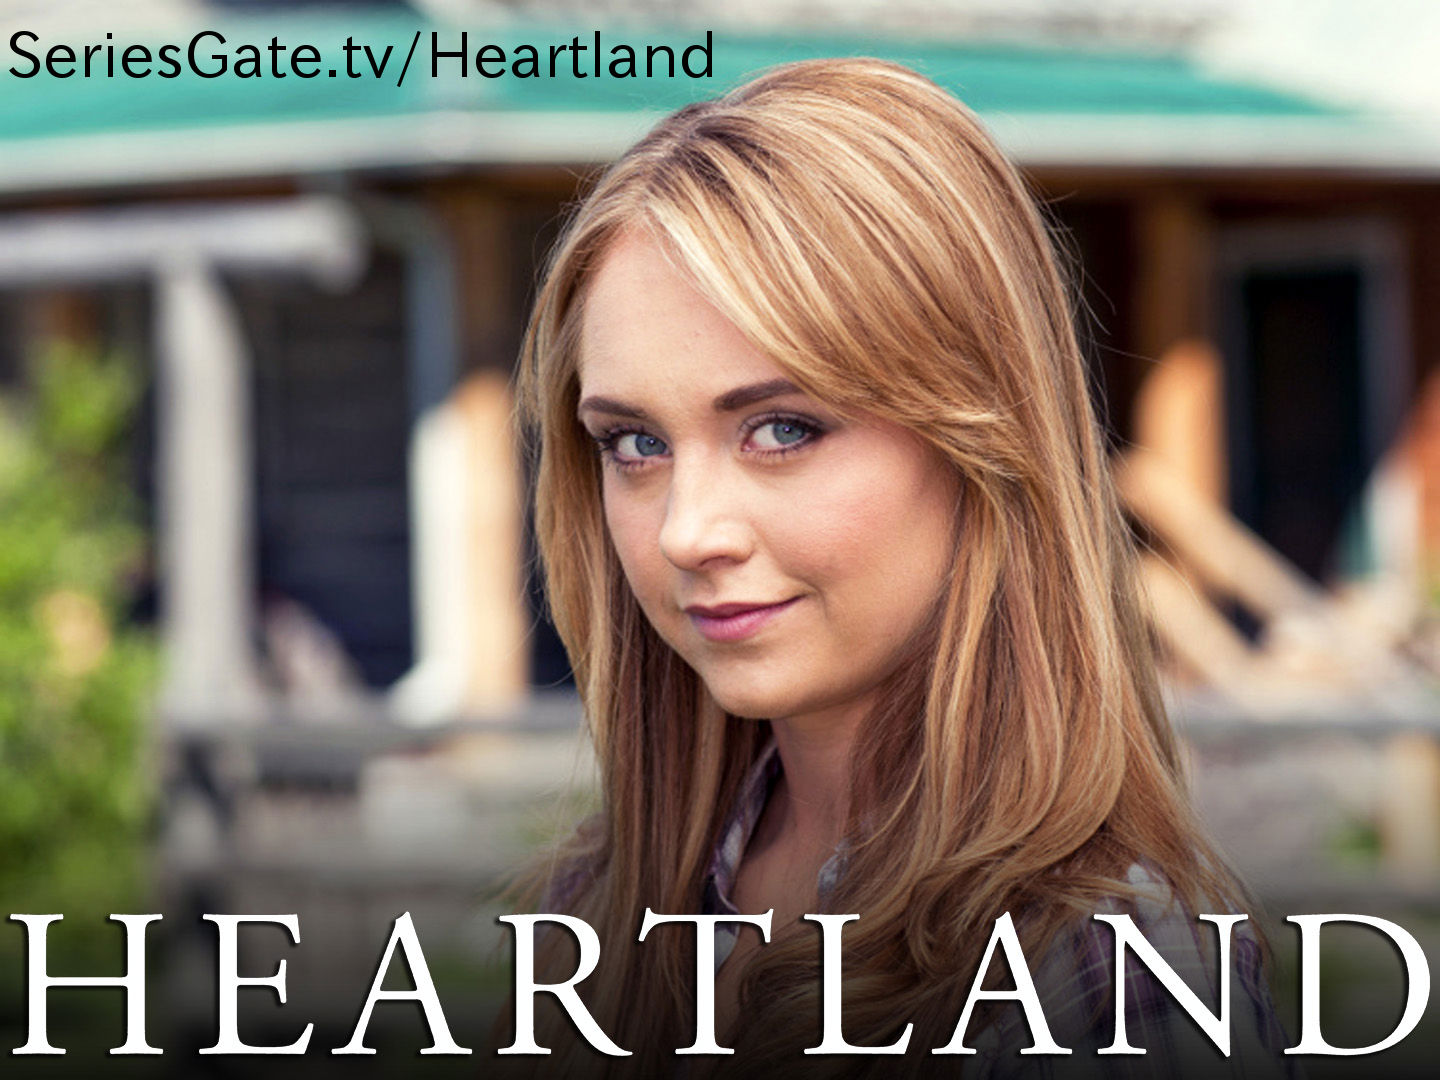 Heartland - Heartland Photo (32673758) - Fanpop